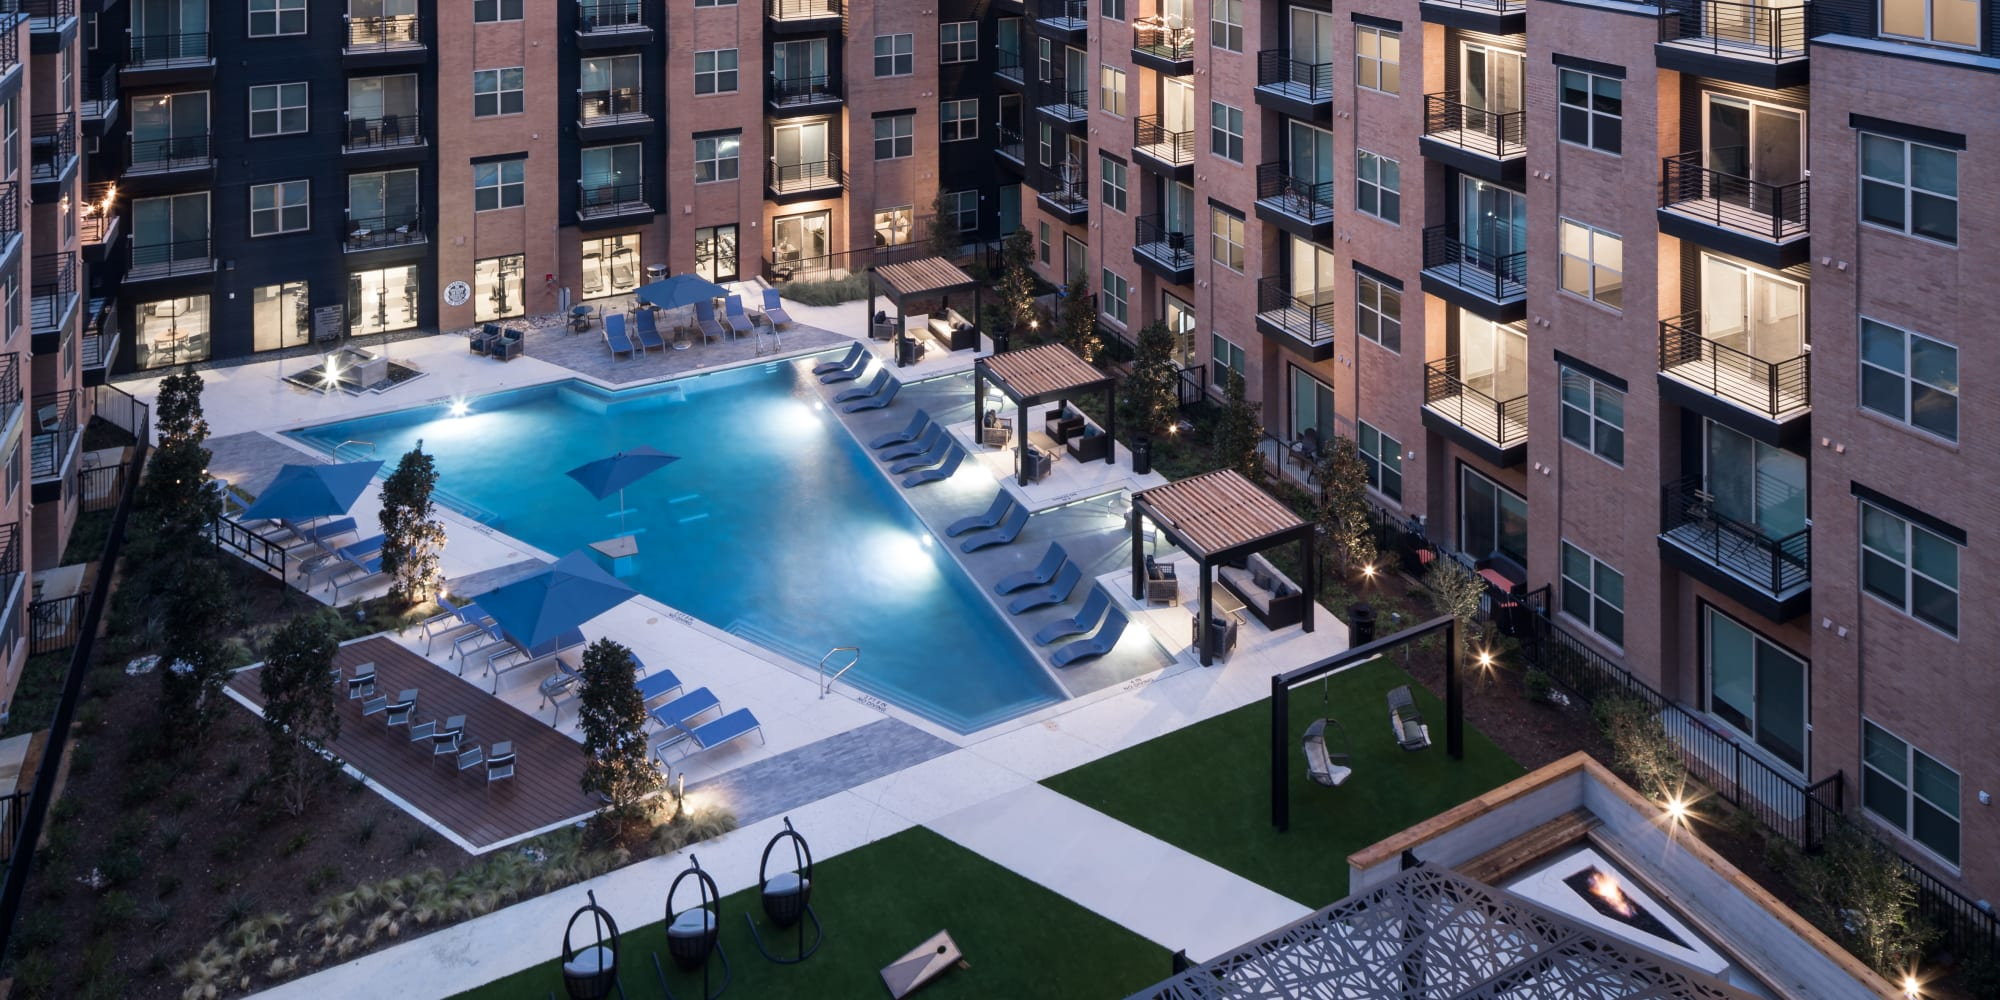 Alta Trinity Green in Dallas. TX offers a swimming pool